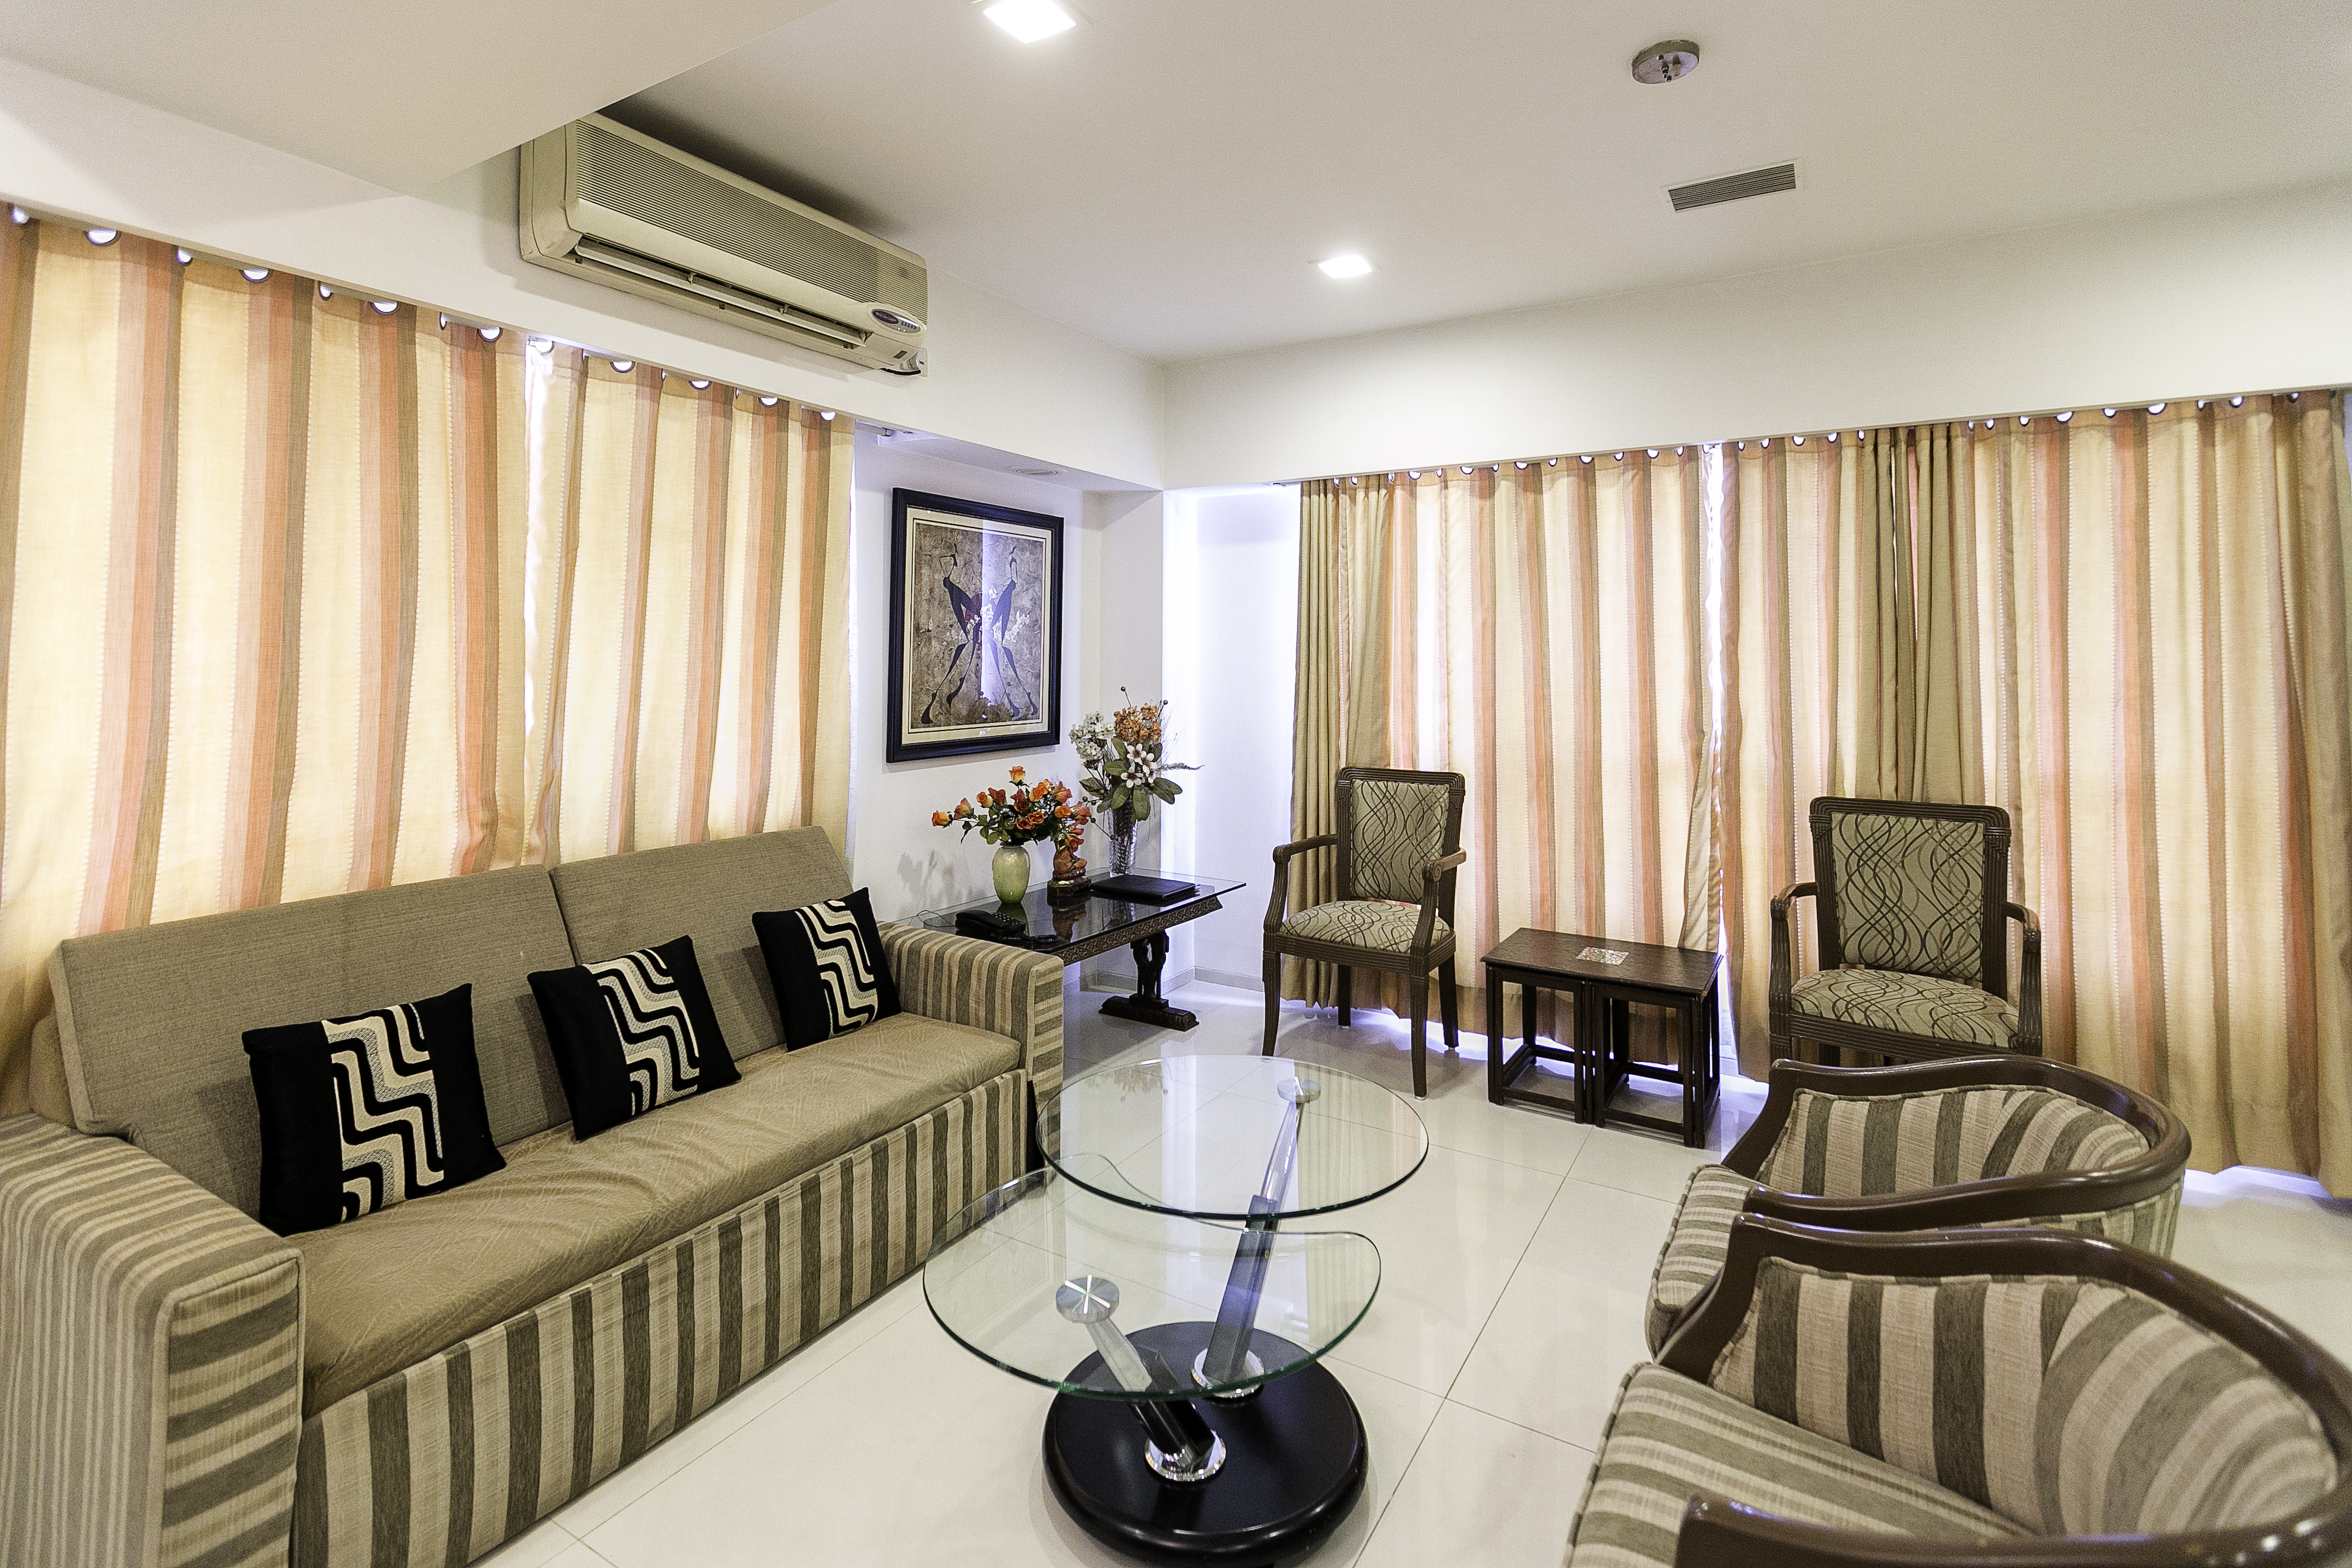 a1 sofa cleaning navi mumbai maharashtra missoni hotels in book the best tariff 1776